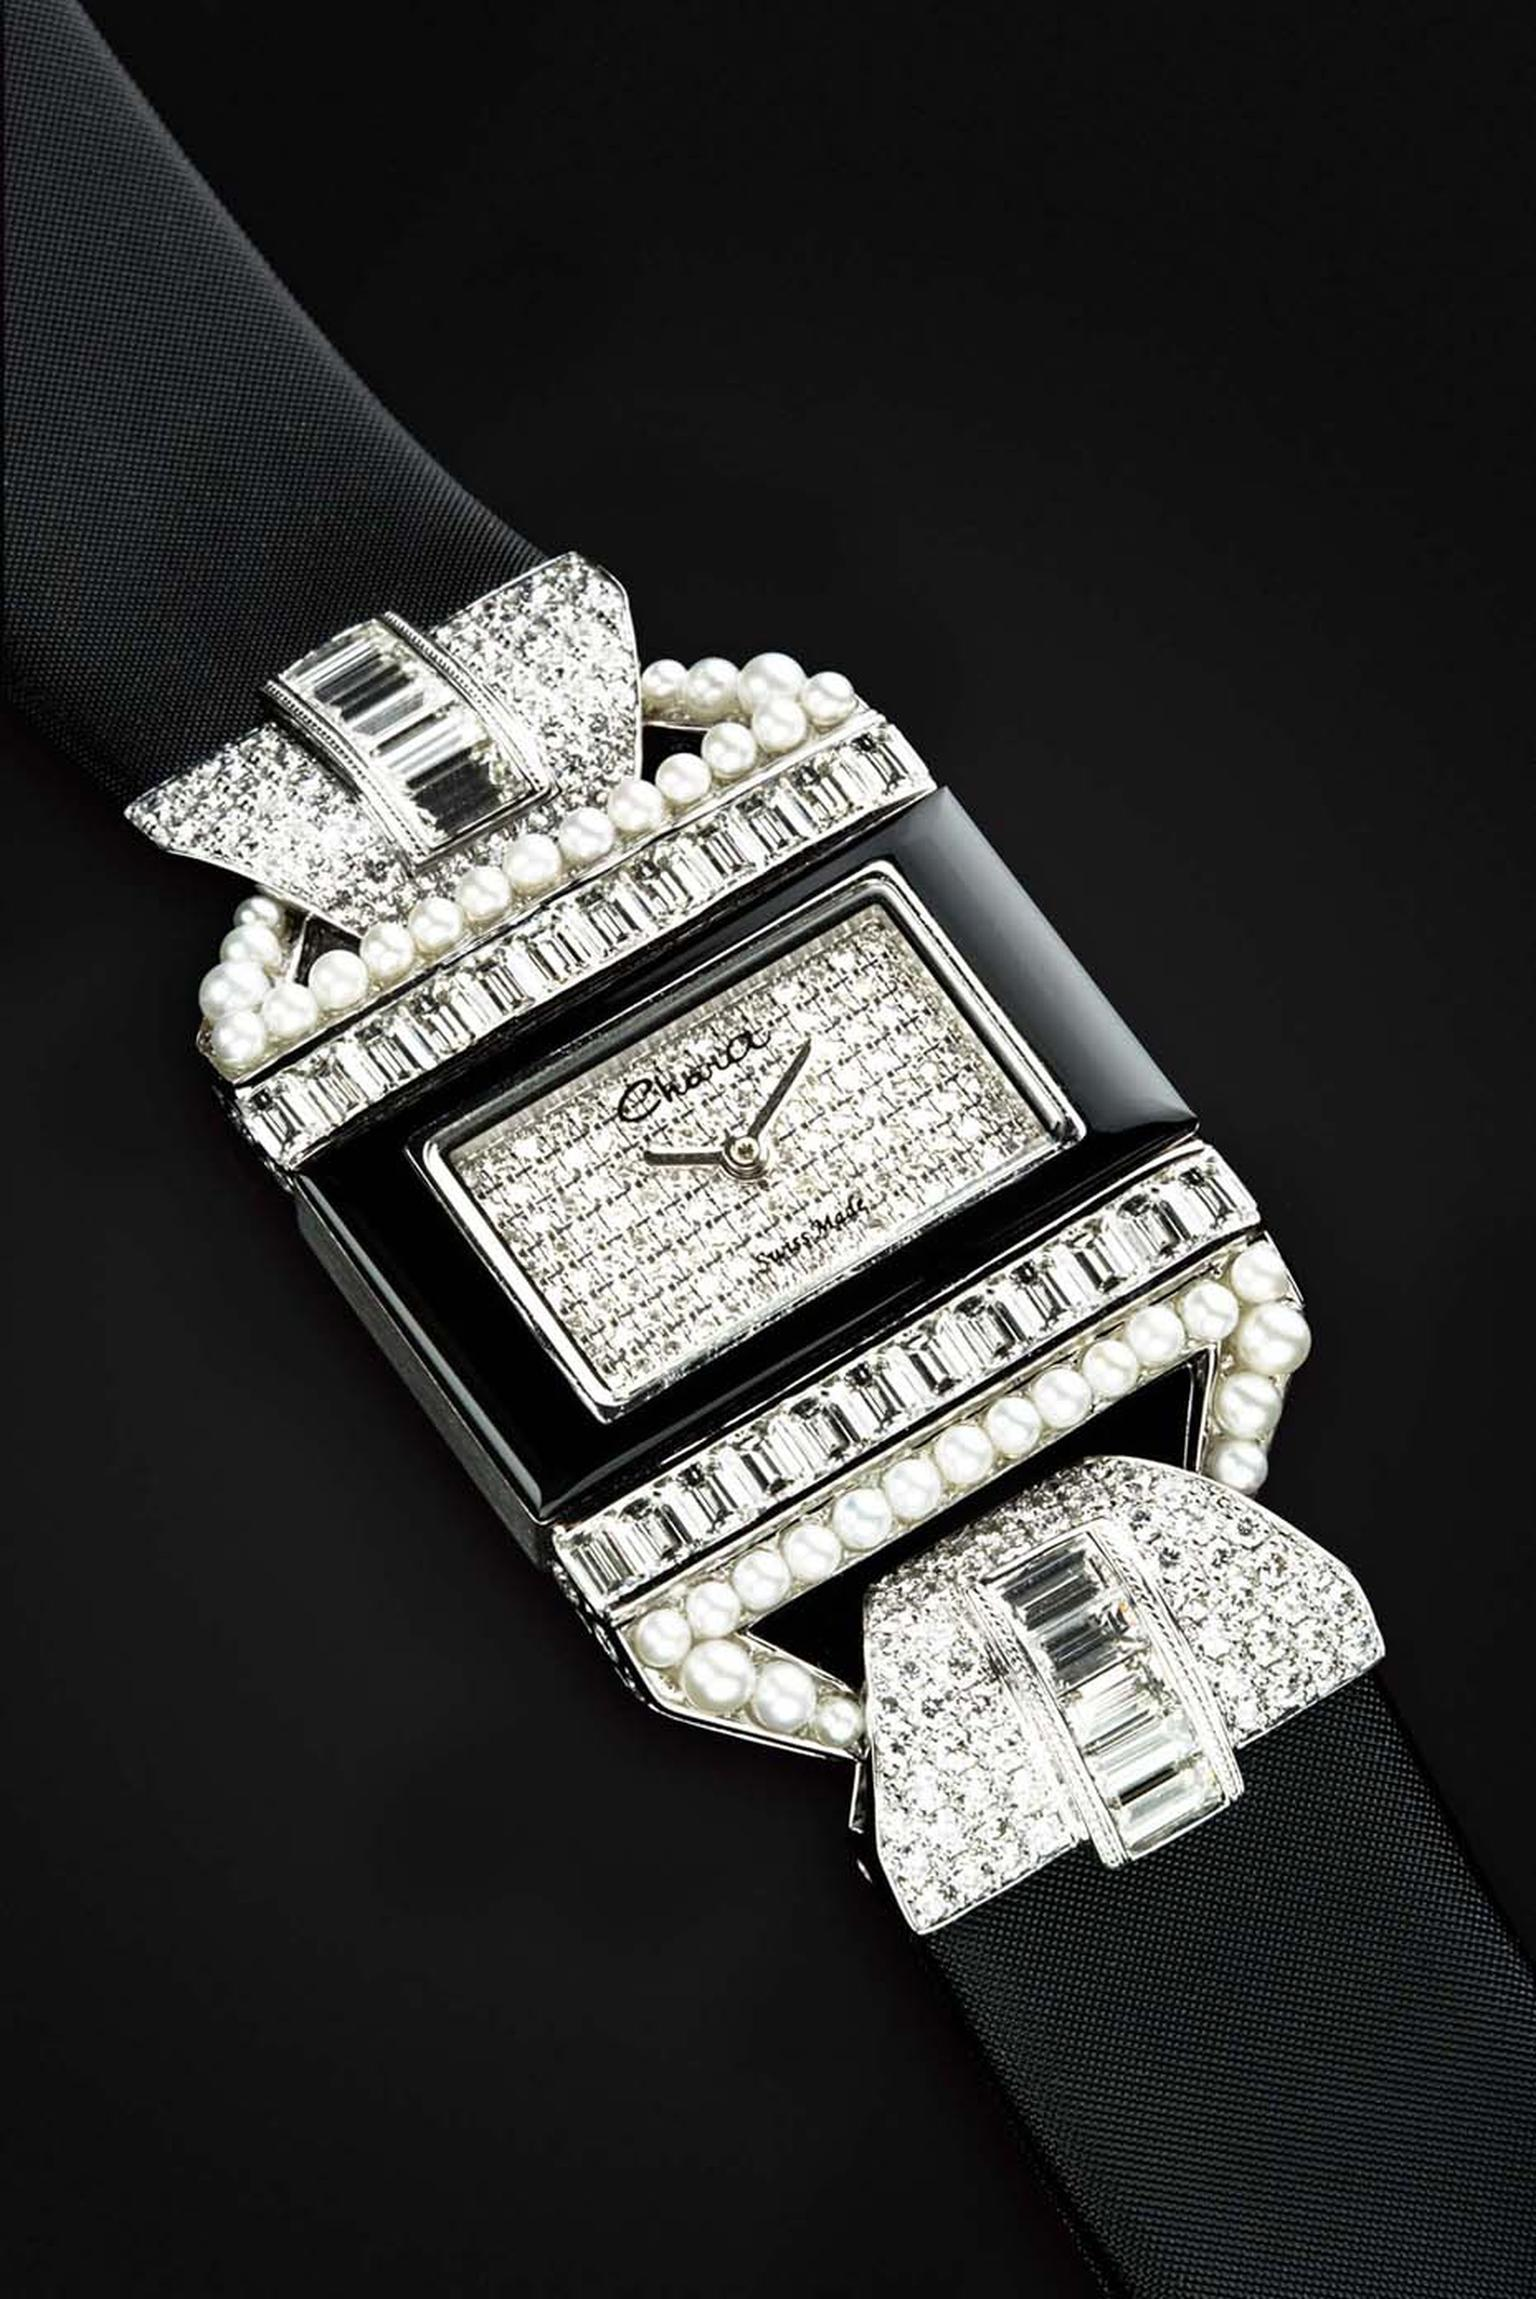 Chara Wen Life collection Flower watch featuring diamonds on the bezel and dial and pearls and diamonds on the lugs